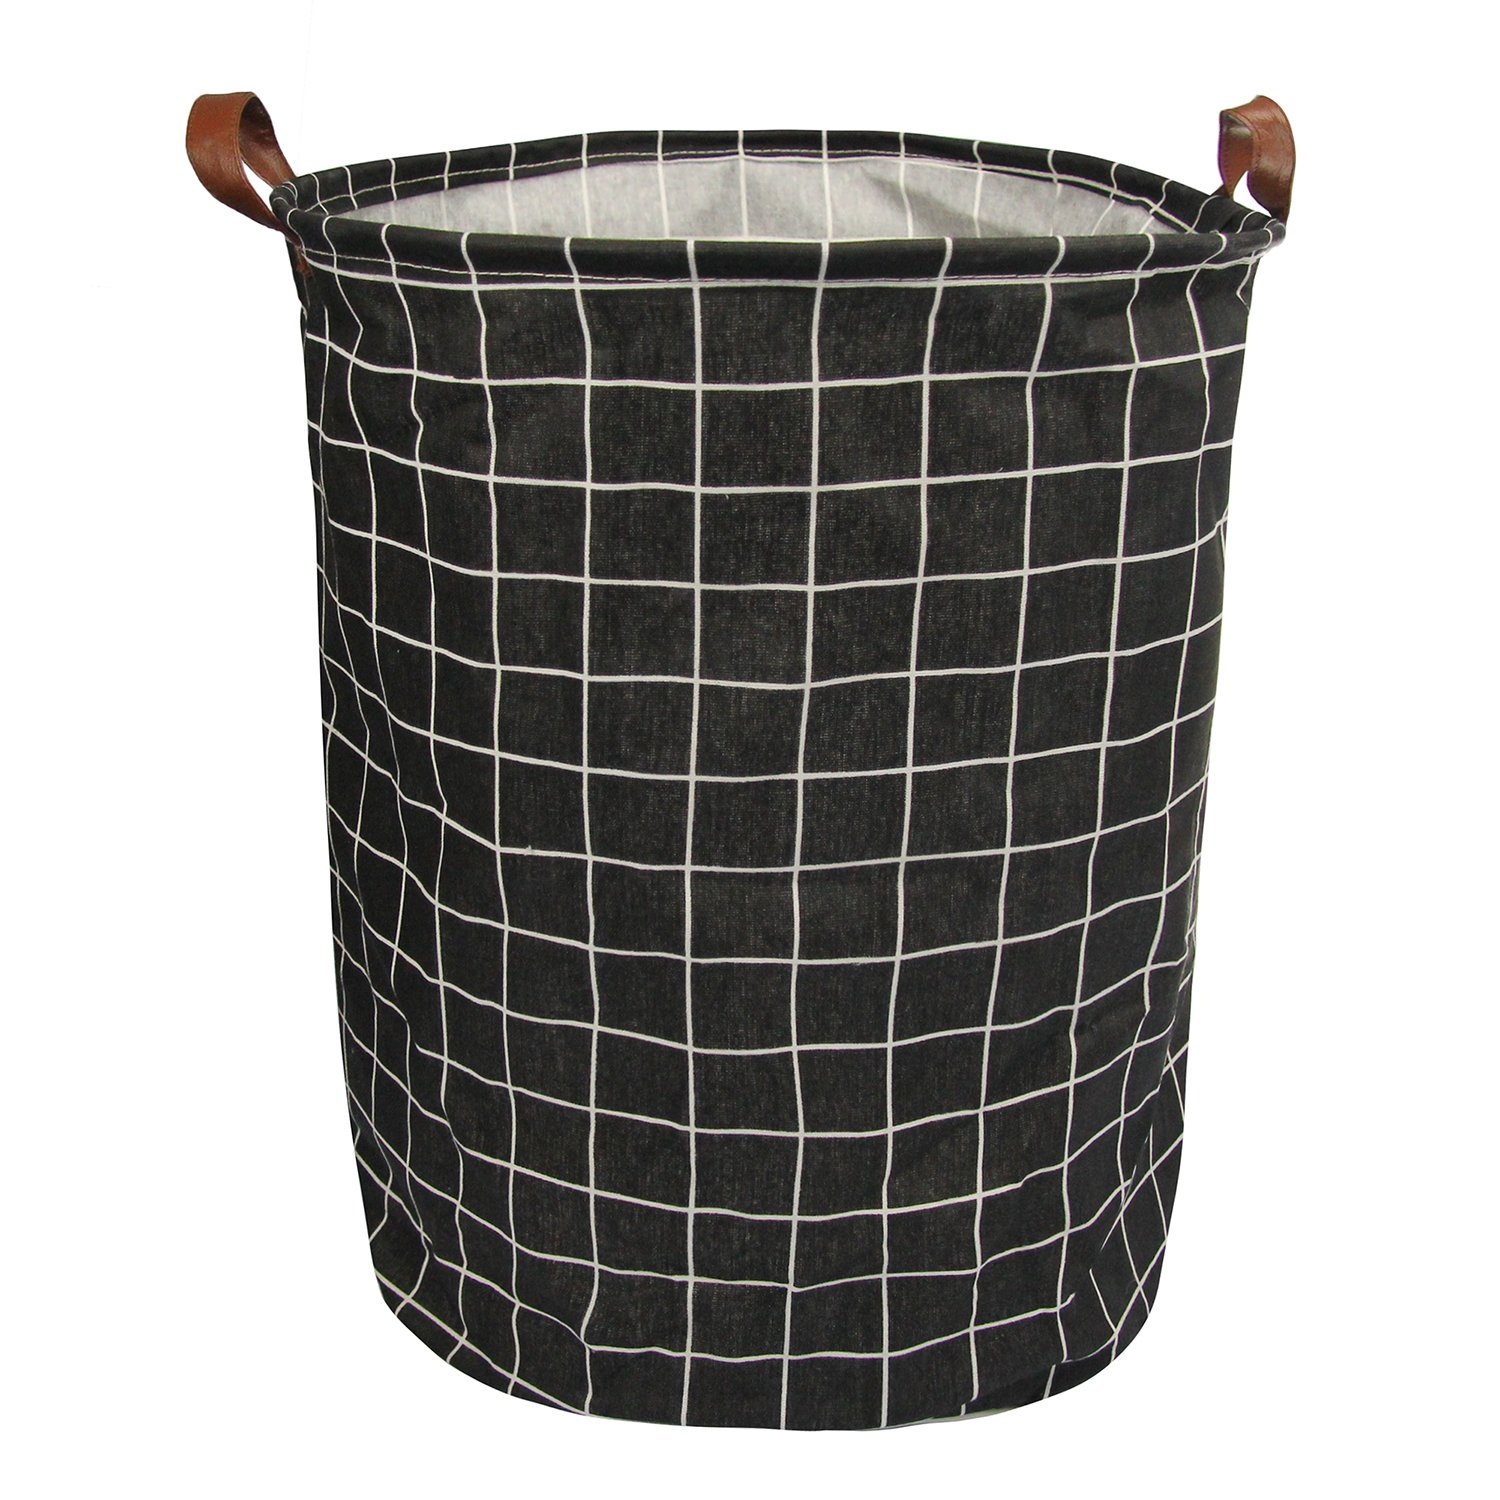 Lastia Dirty Clothes Laundry Toy Storage Basket Canvas for Bedroom Bathroom Kids Black and Plaid 15.7x15.7x19.7